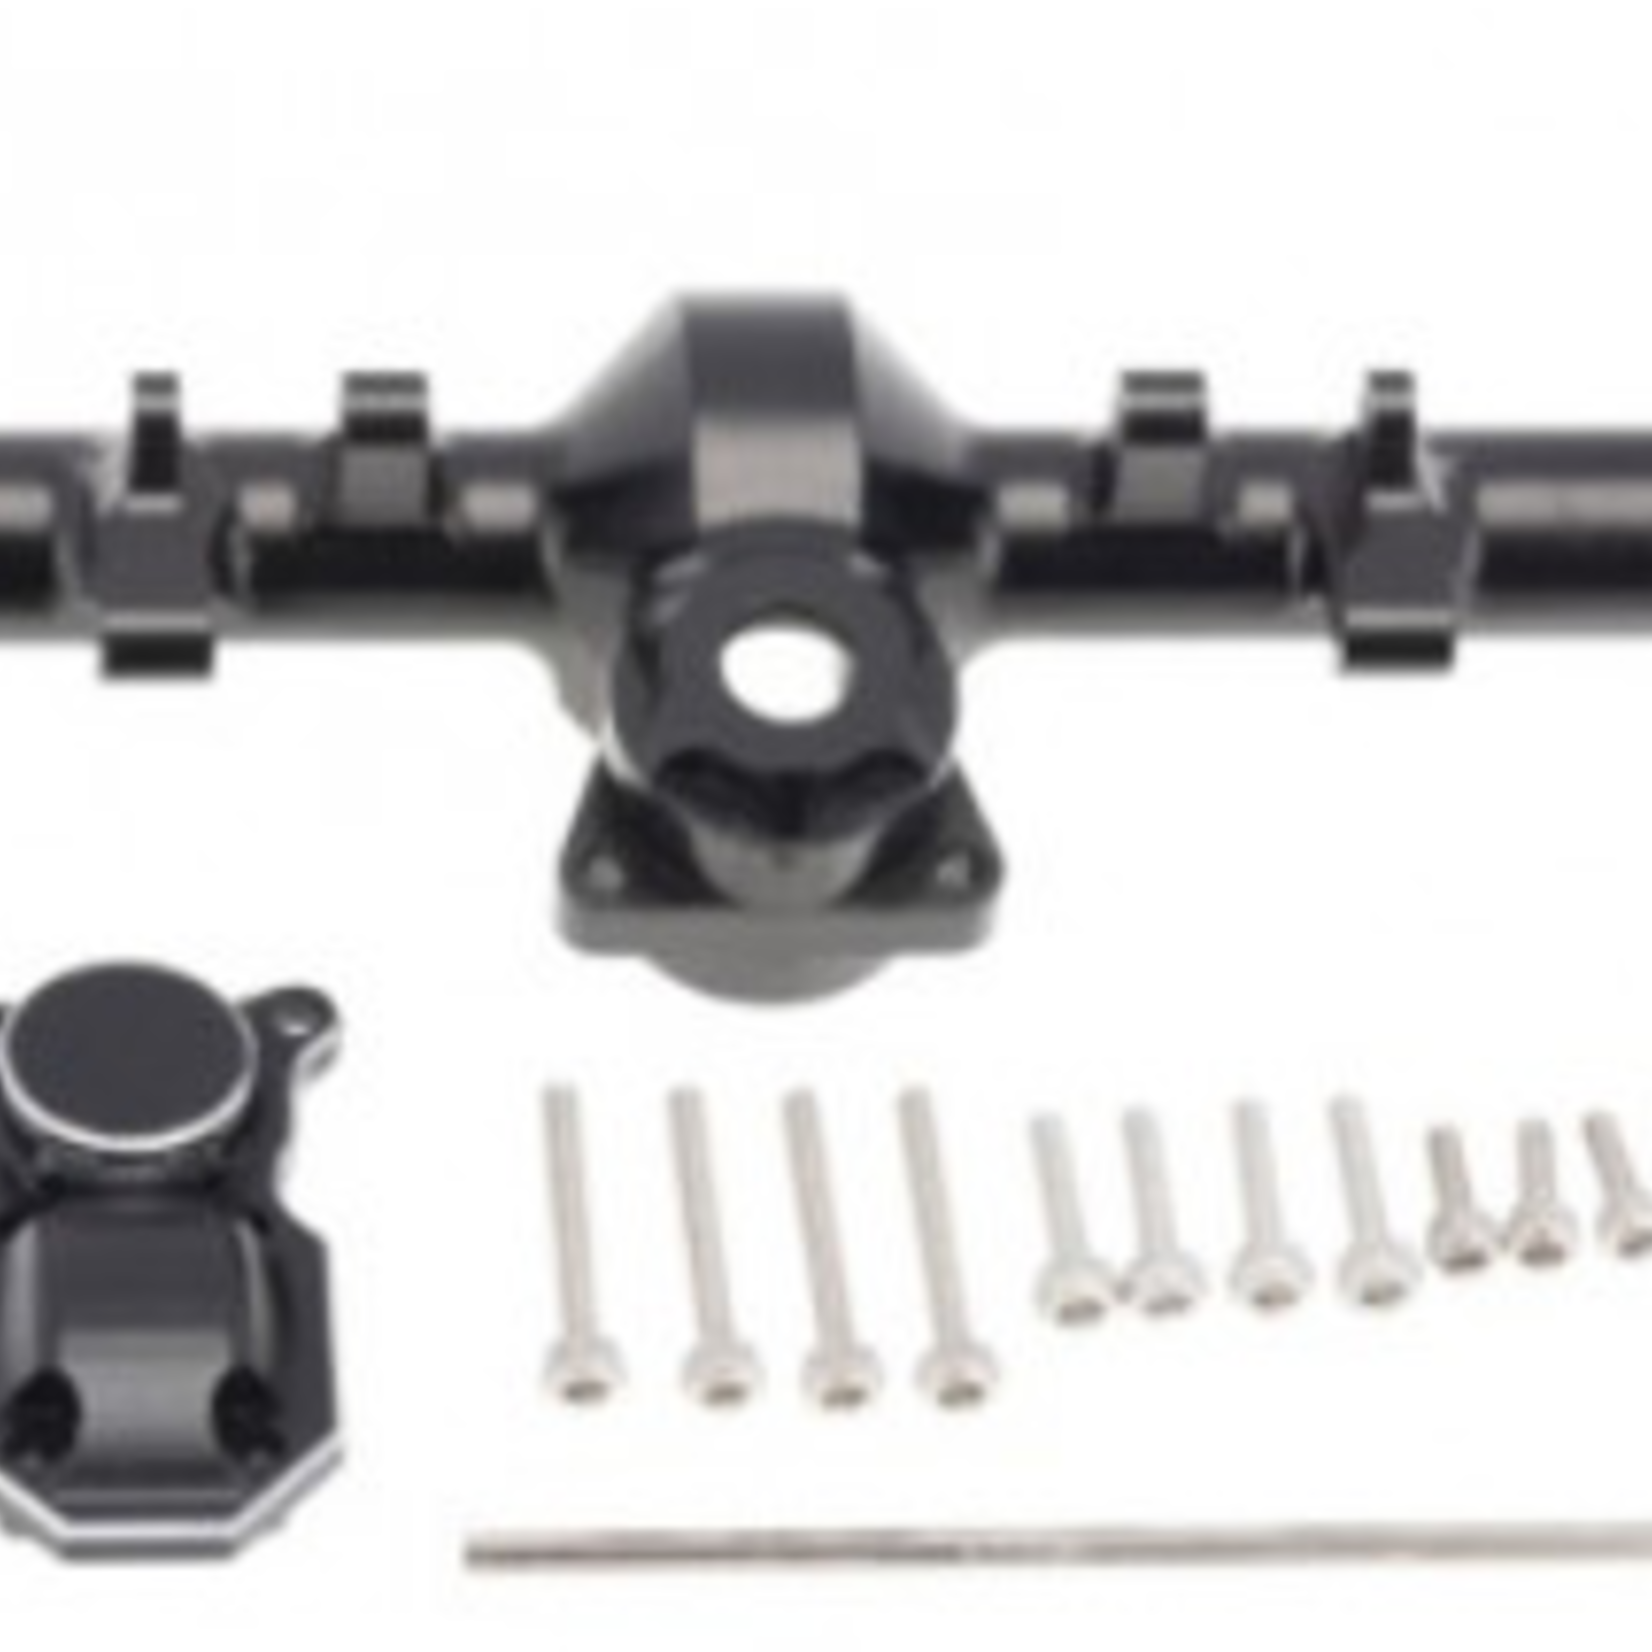 Hobby Details DTSCX24-18 Hobby Details Axial SCX24 Aluminum Alloy Rear Axle Housing Black with Cover 1pc